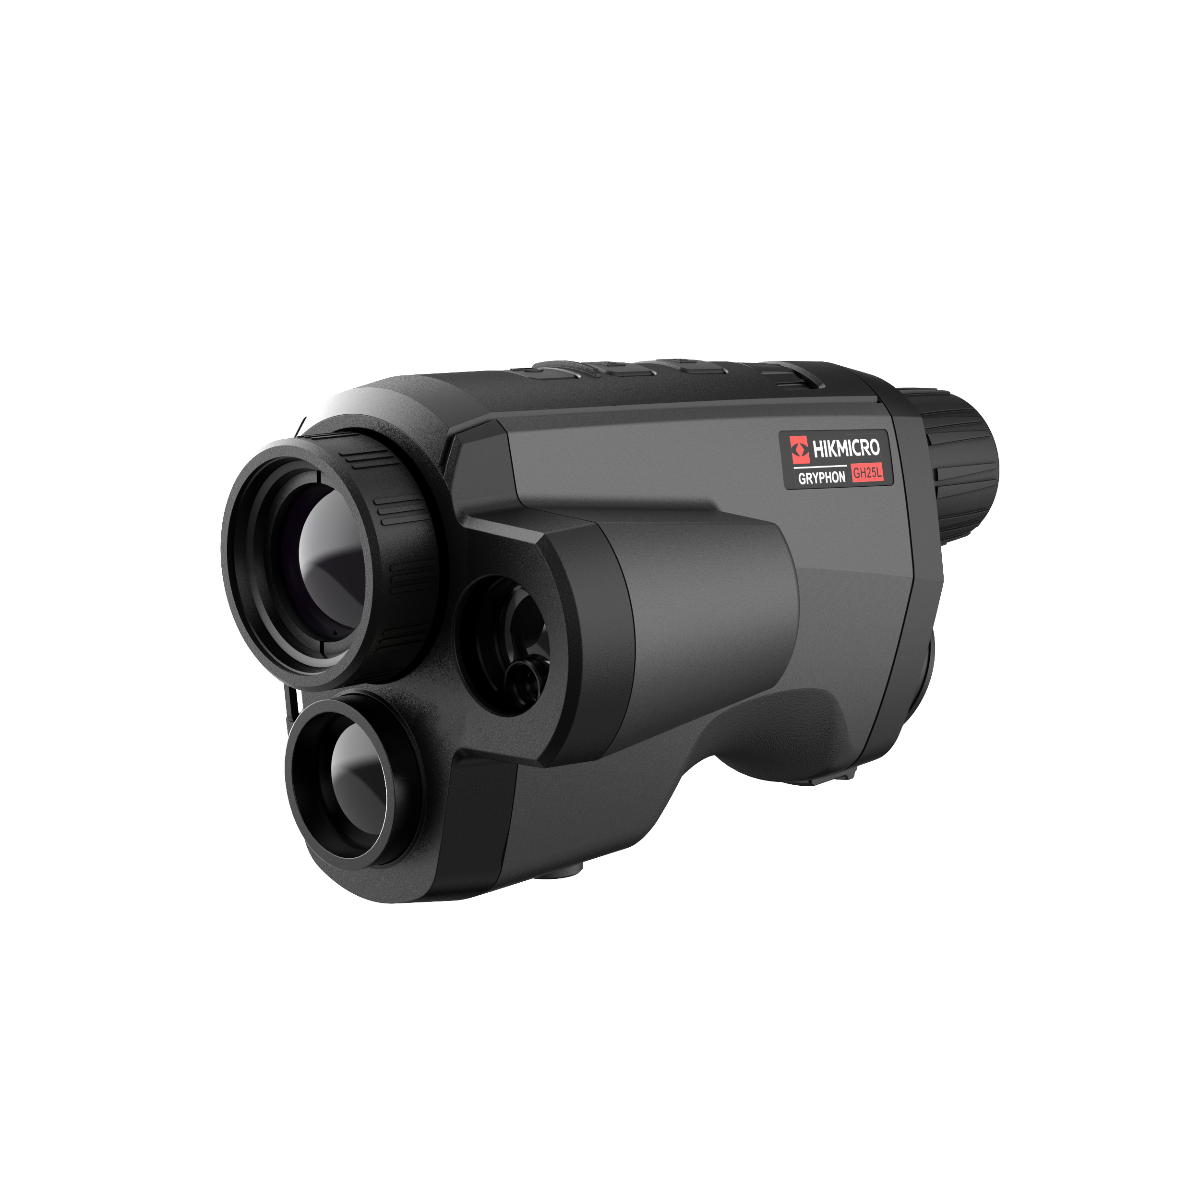 HIKMICRO Gryphon 25mm Fusion Thermal & Optical Monocular With LRF